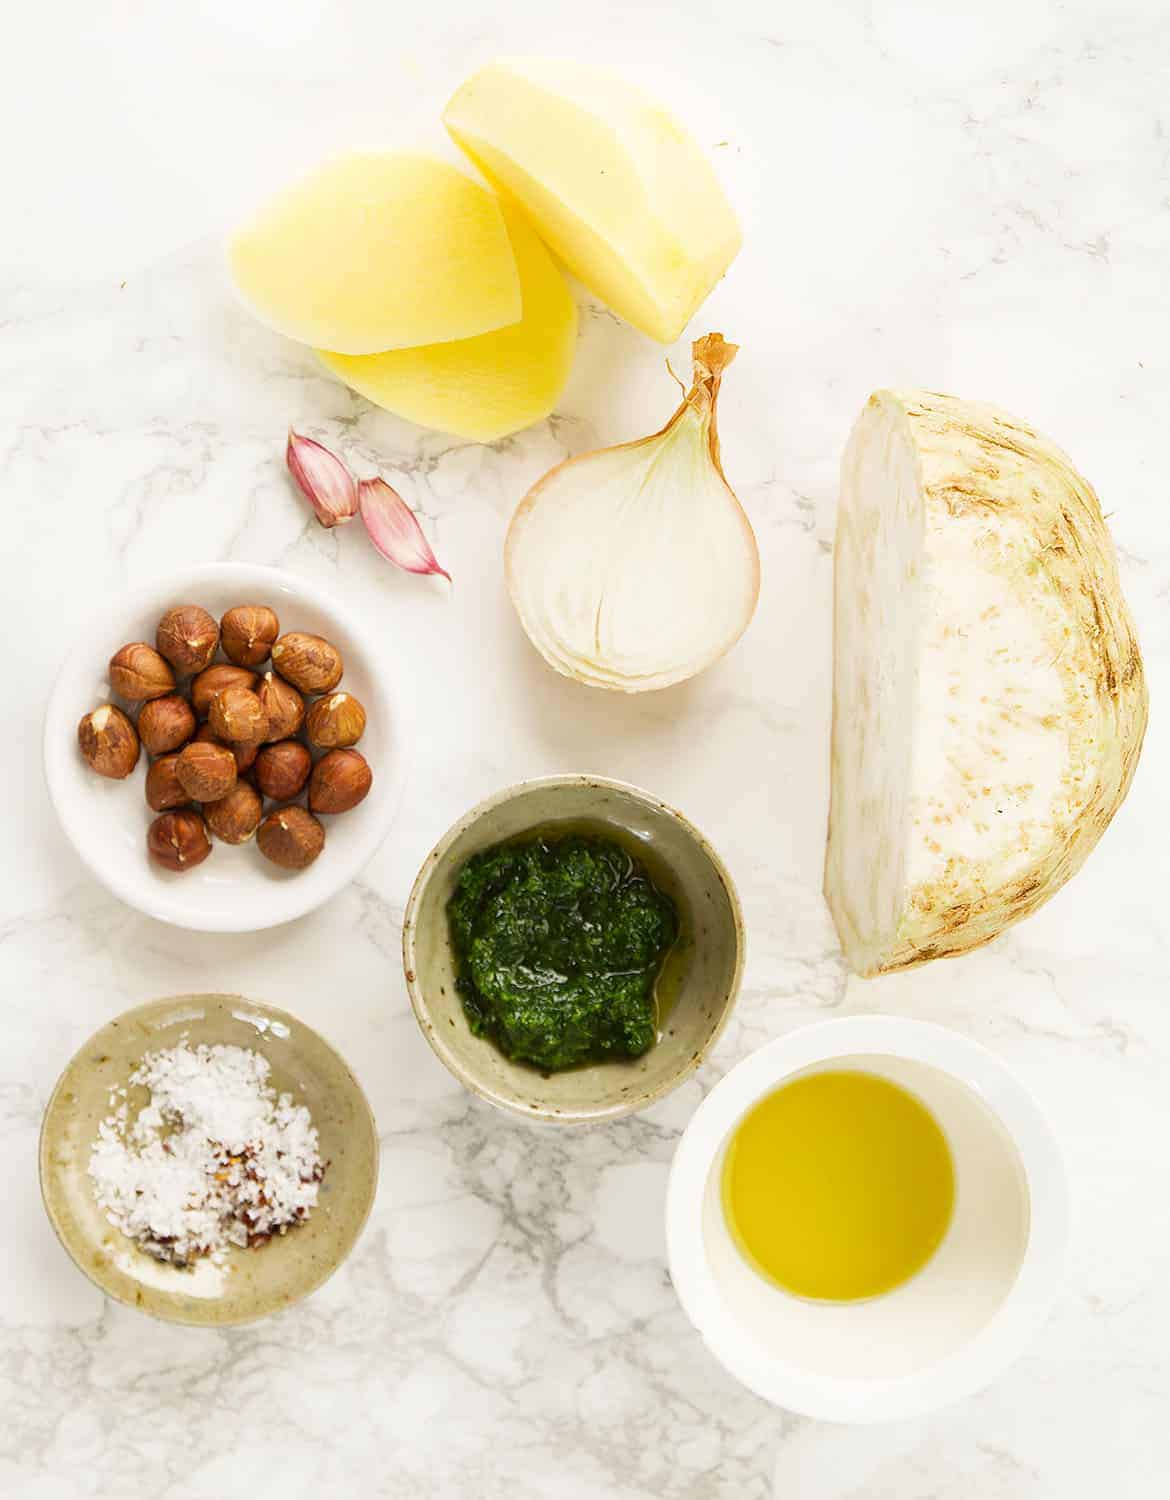 The ingredients for the celeriac soup are arranged over a white background.